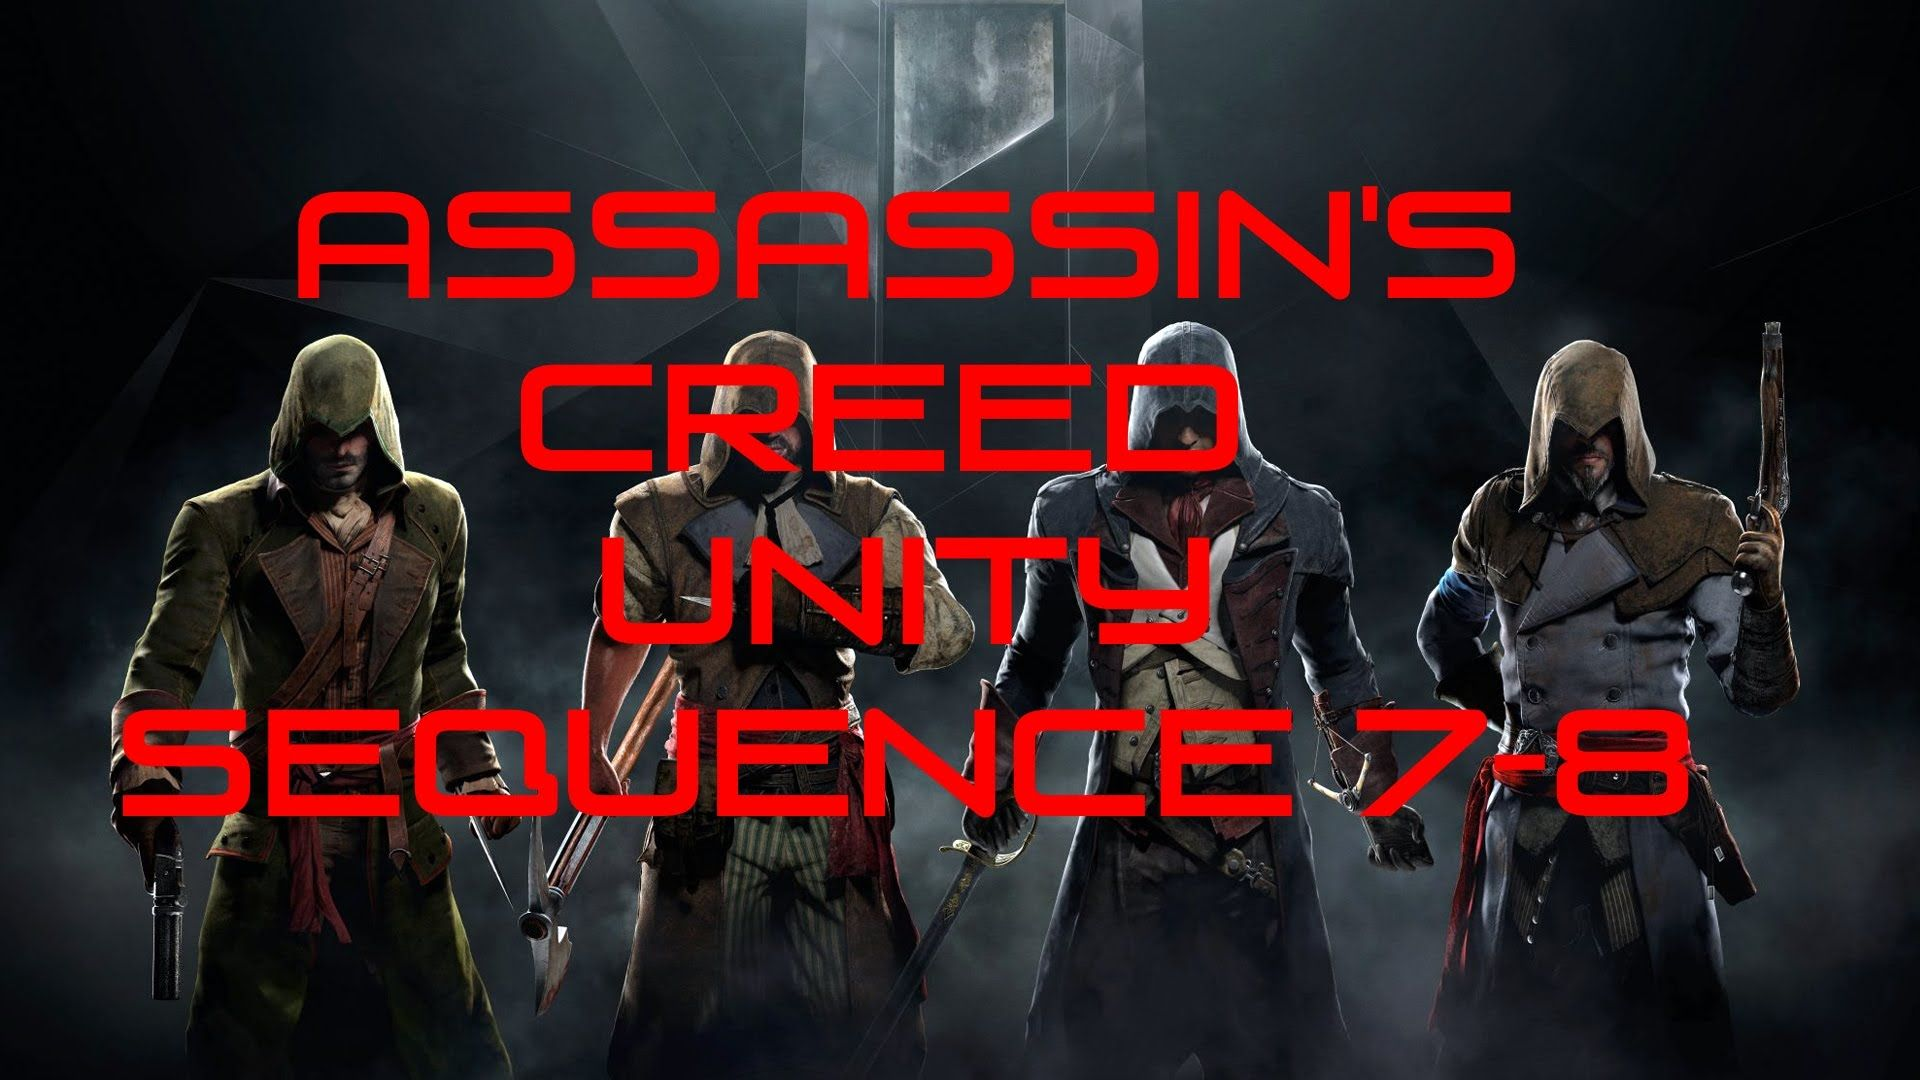 Assassins creed unity sequence 78 assassins creed